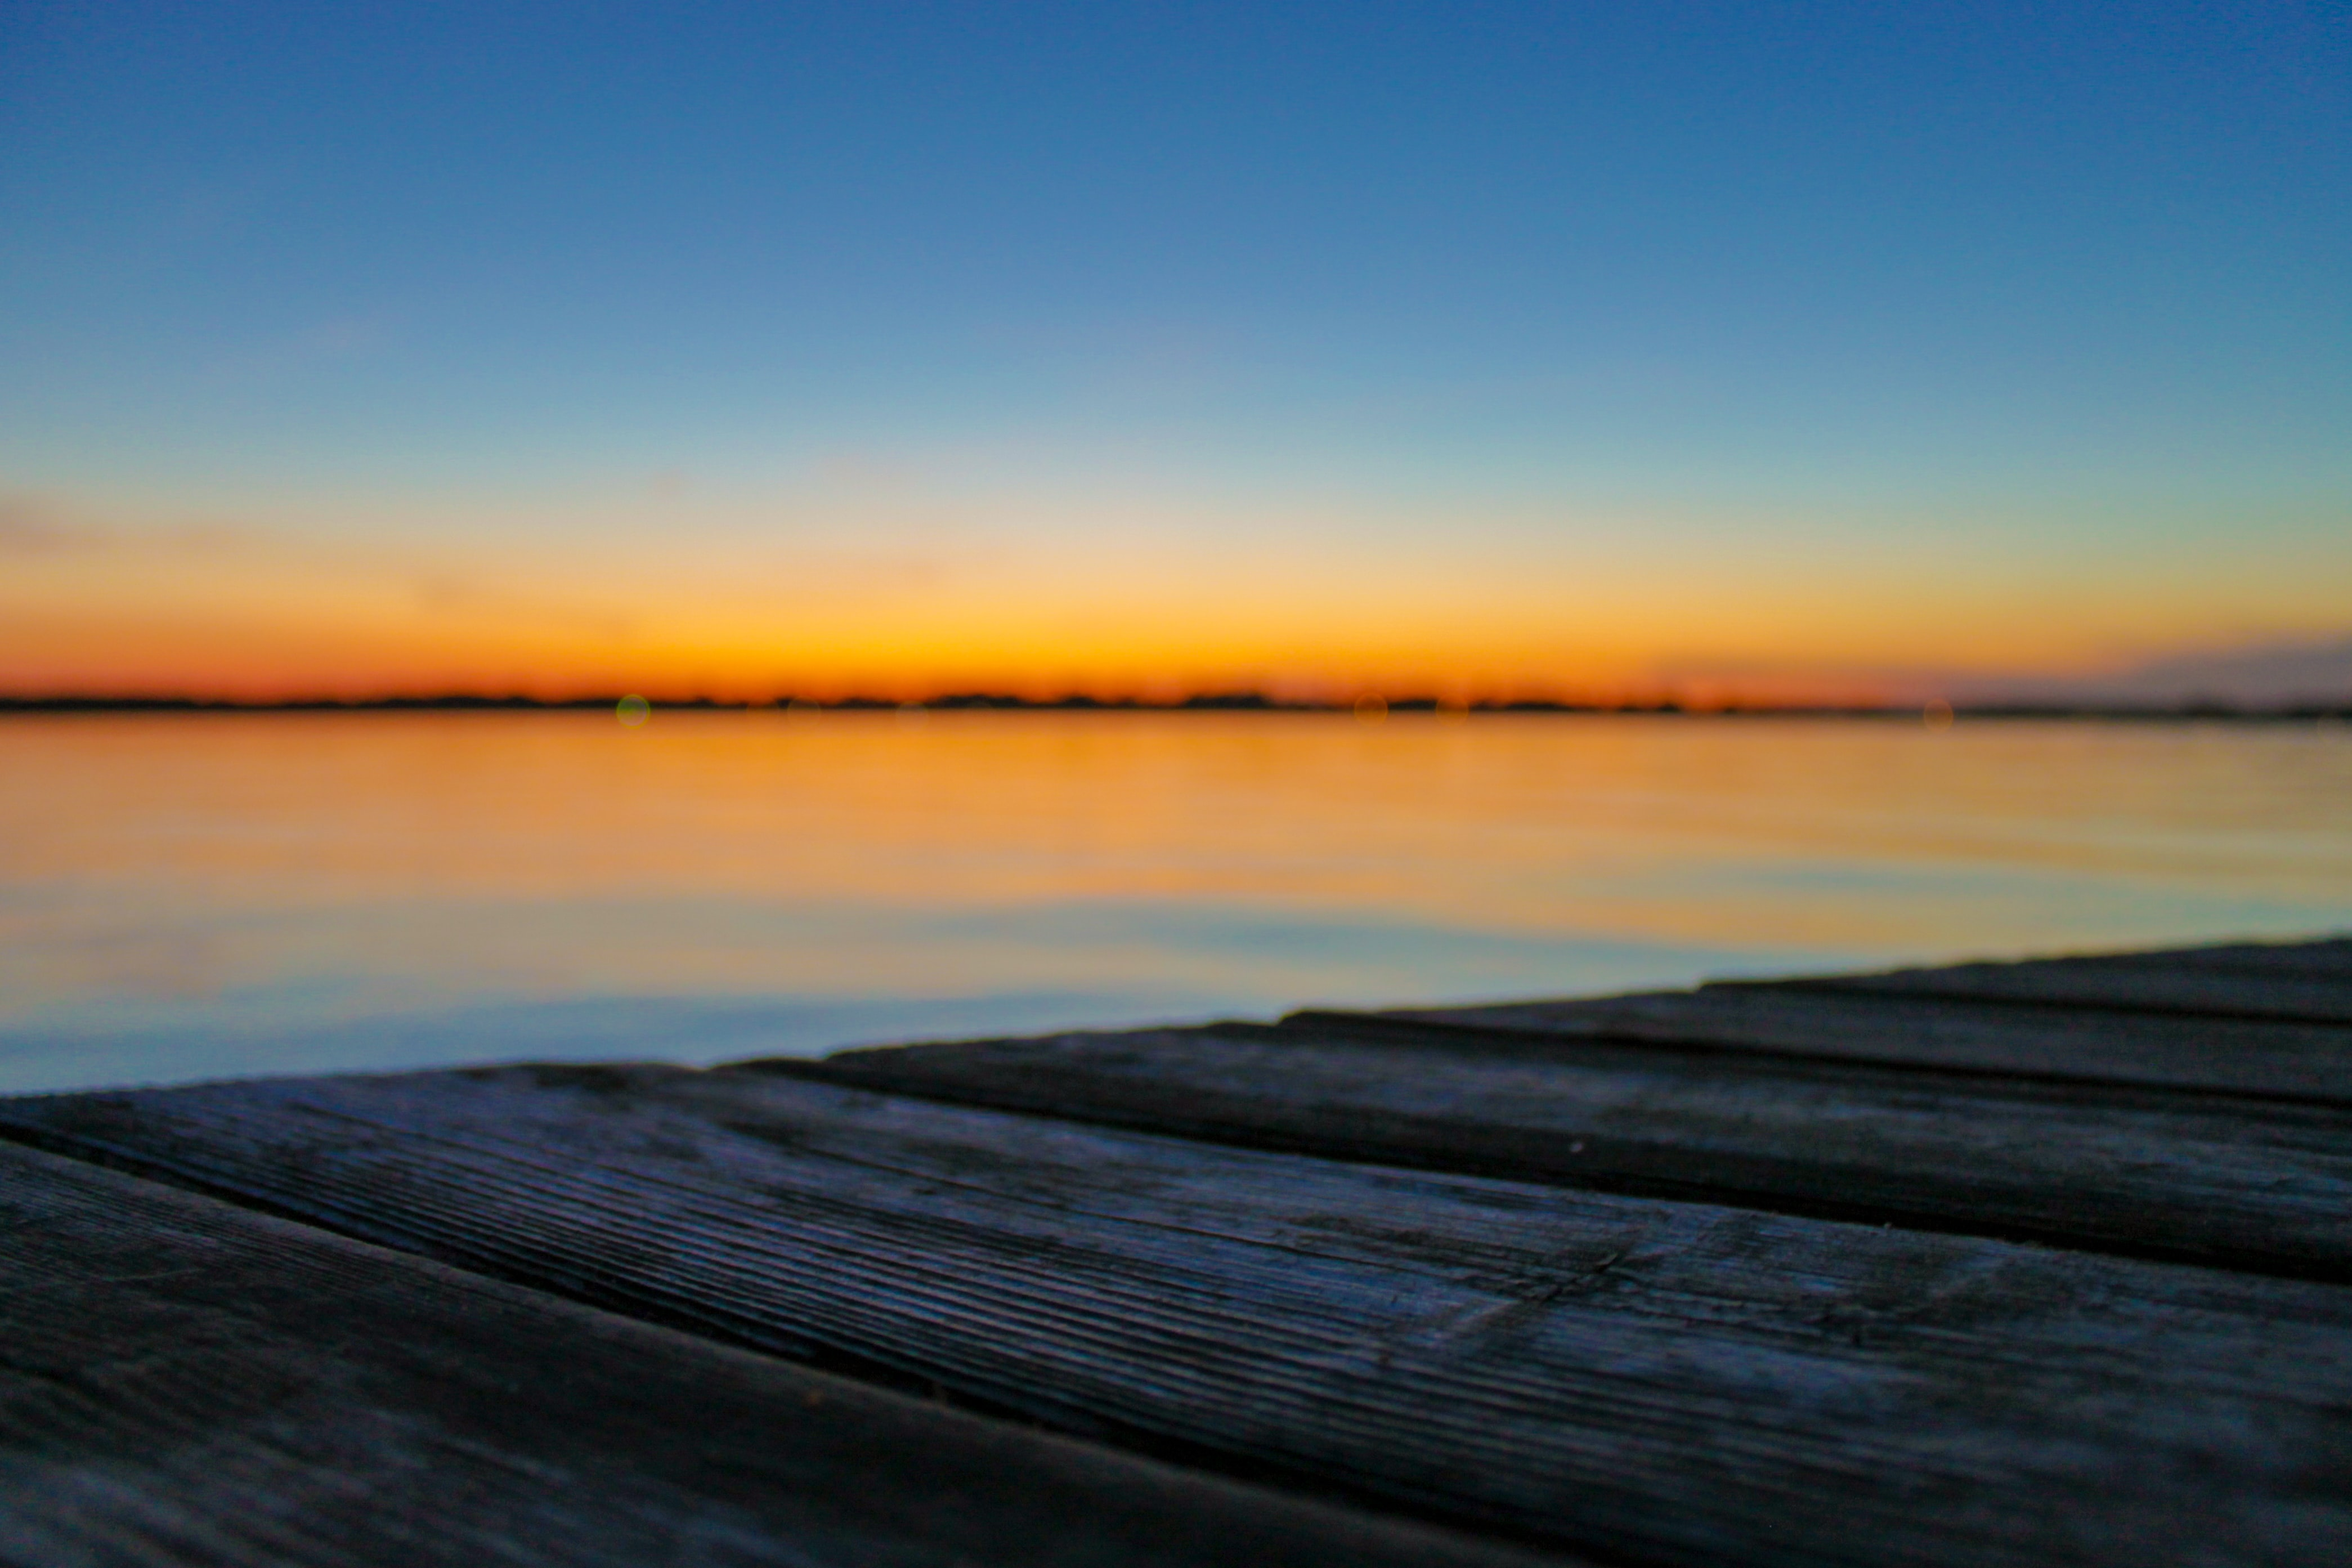 selective focus photo of brown wood planks in front of beach during golden hour